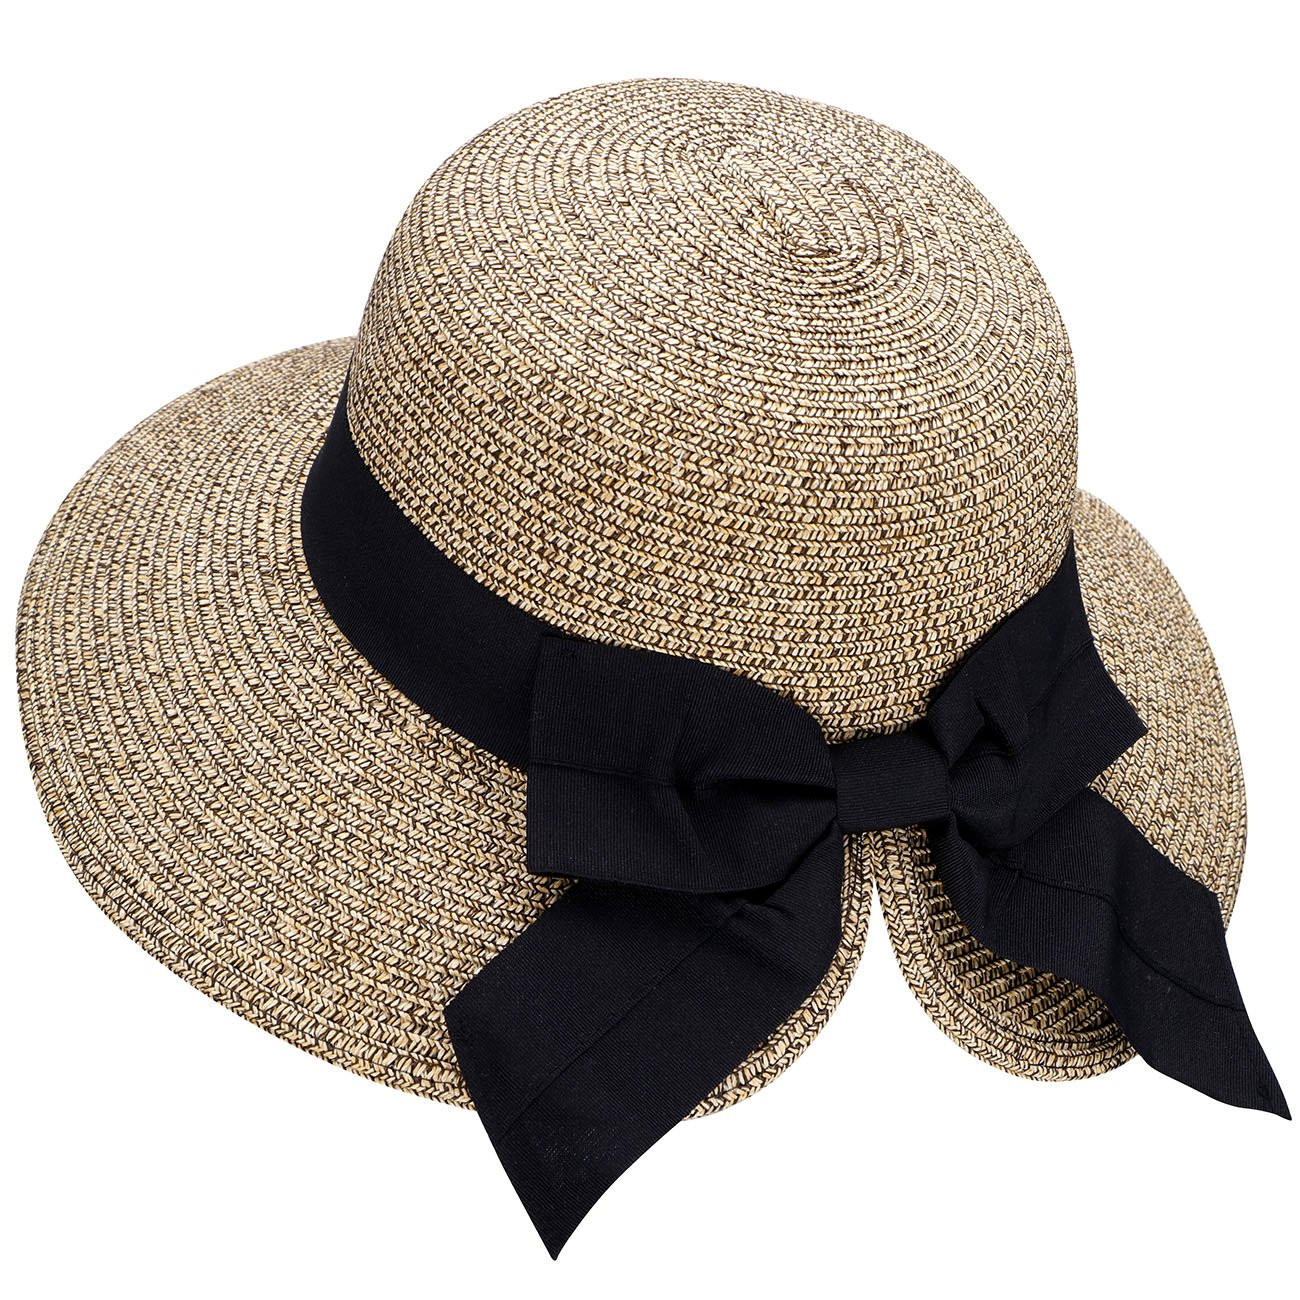 b521a6d5e8bf6 Details about Verabella Floppy Hat Women s UPF 50+ Foldable Packable Straw  Sun Beach Hat